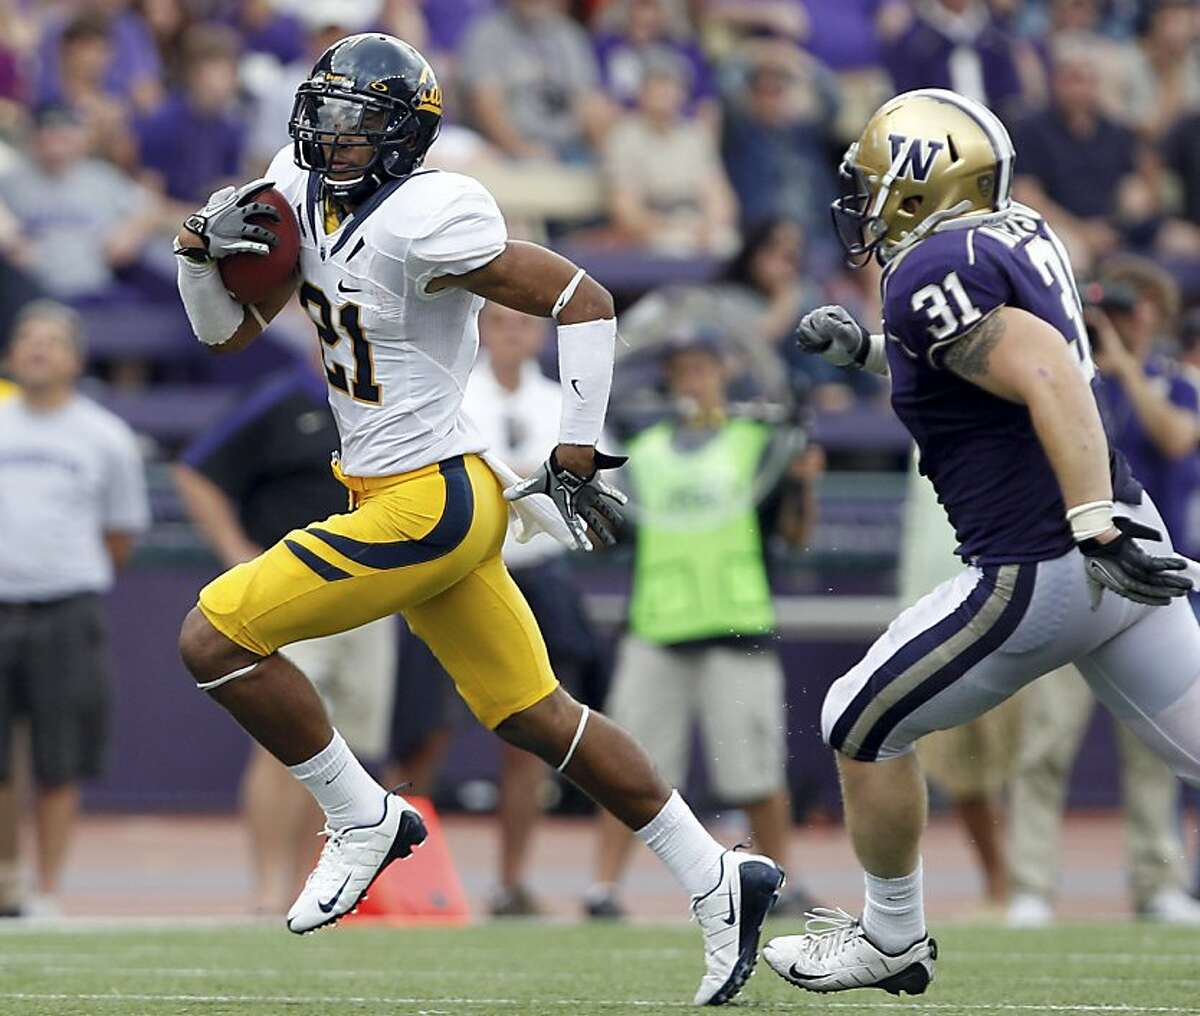 California's Keenan Allen, left, is chased by Washington's Cort Dennison in the second half of an NCAA college football game, Saturday, Sept. 24, 2011, in Seattle. Washington won 31-23. (AP Photo/Elaine Thompson)